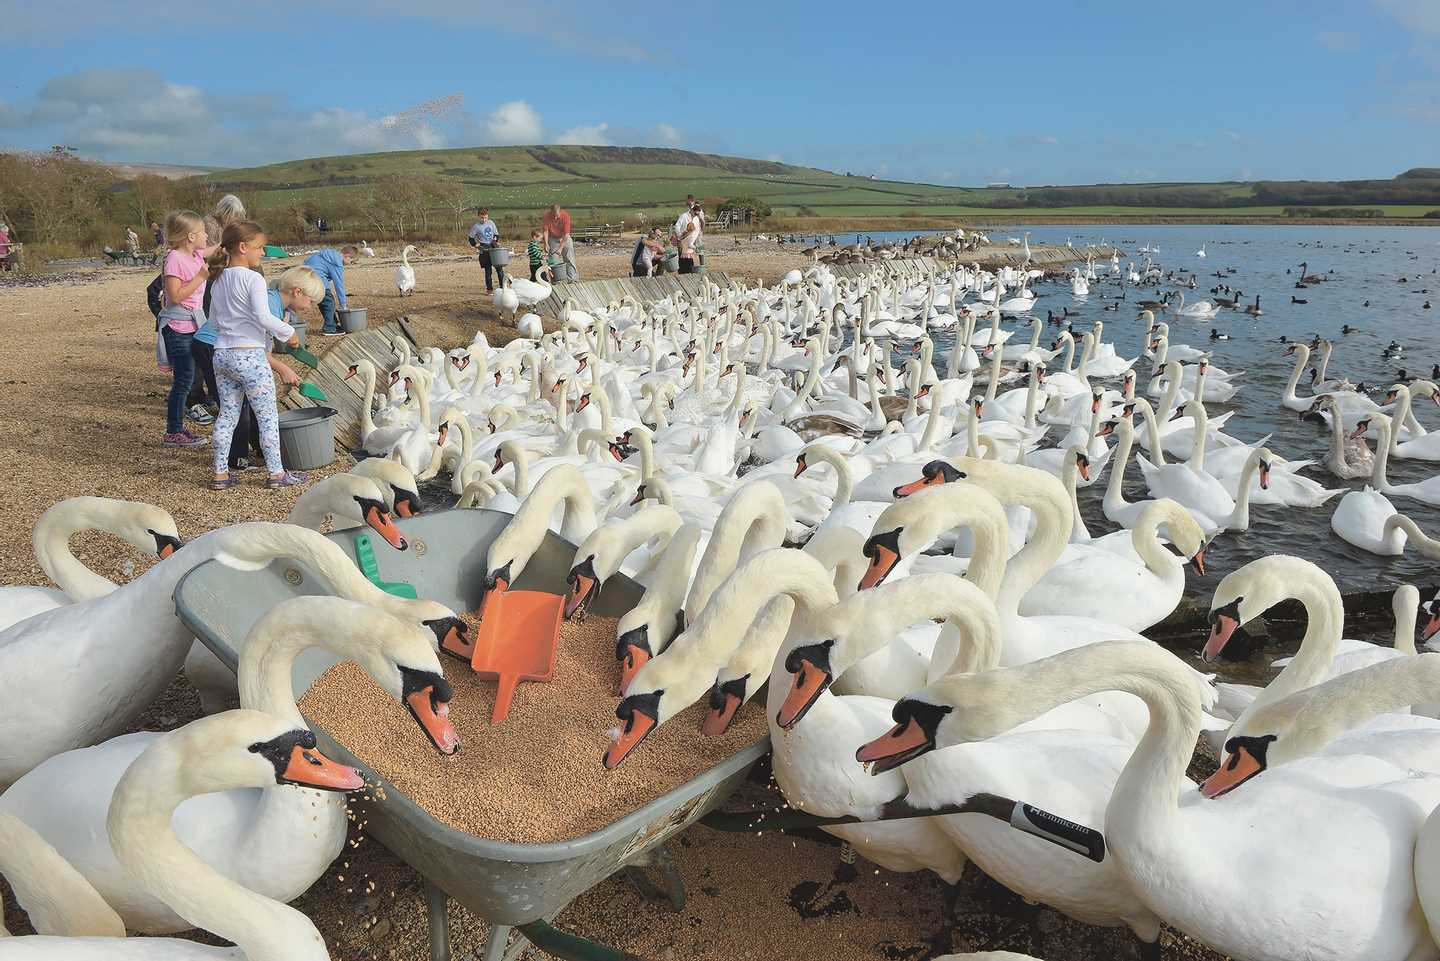 A bevy of swans at Abbotsbury Swannery